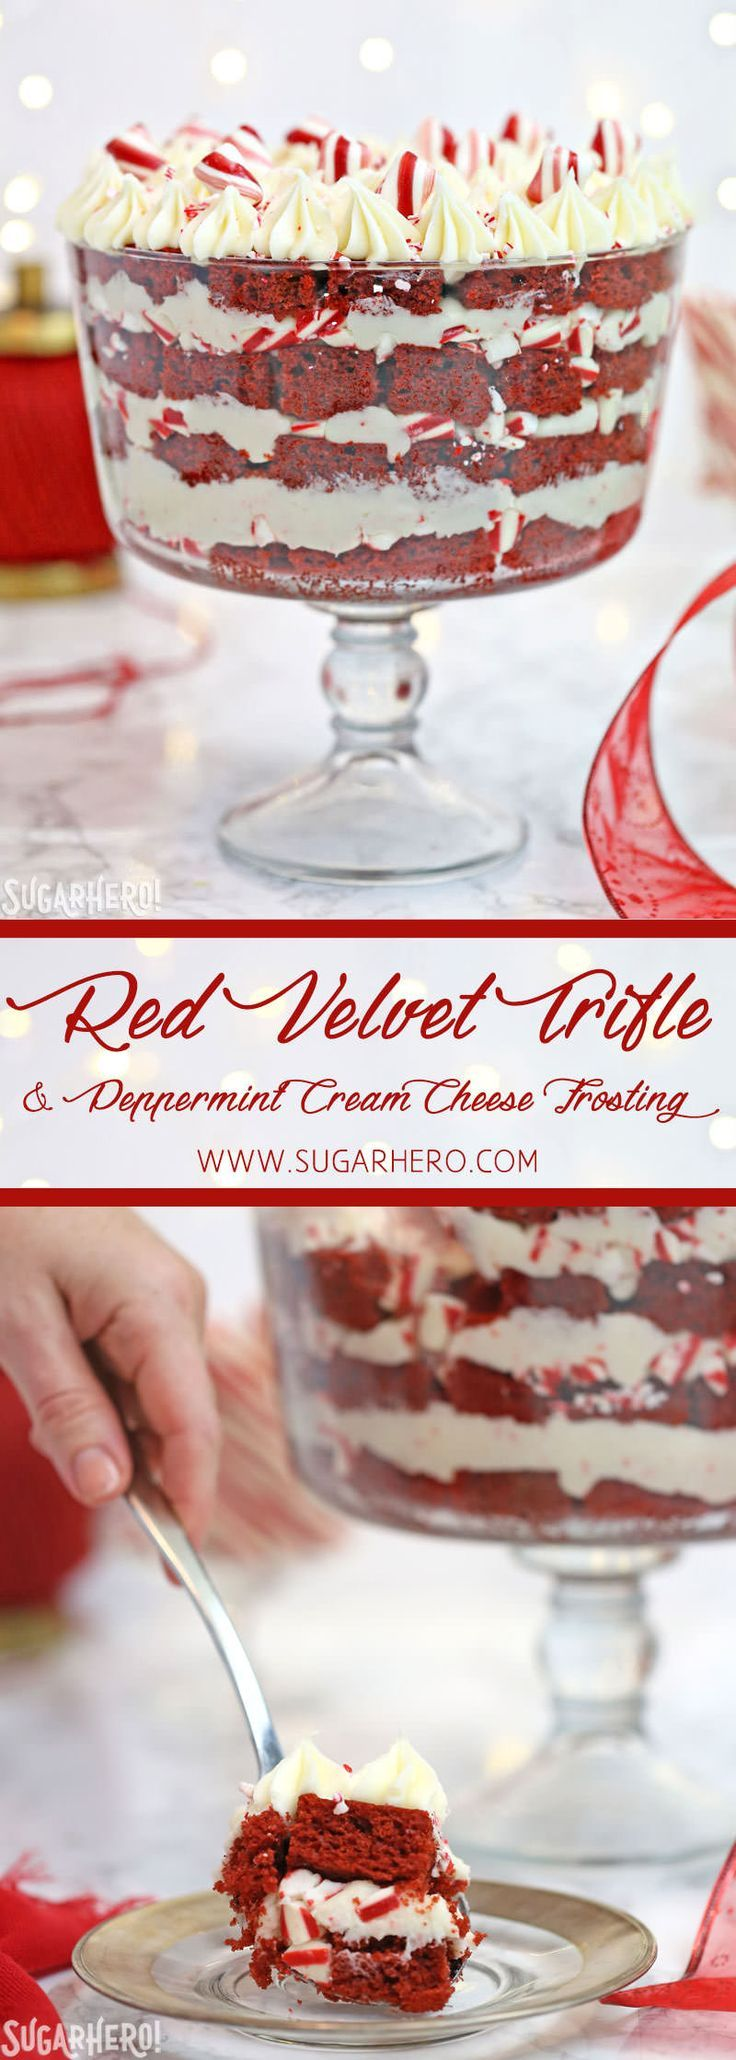 Red Velvet Trifle with Peppermint Cream Cheese Frosting - great for the Christmas holidays! | From SugarHero.com